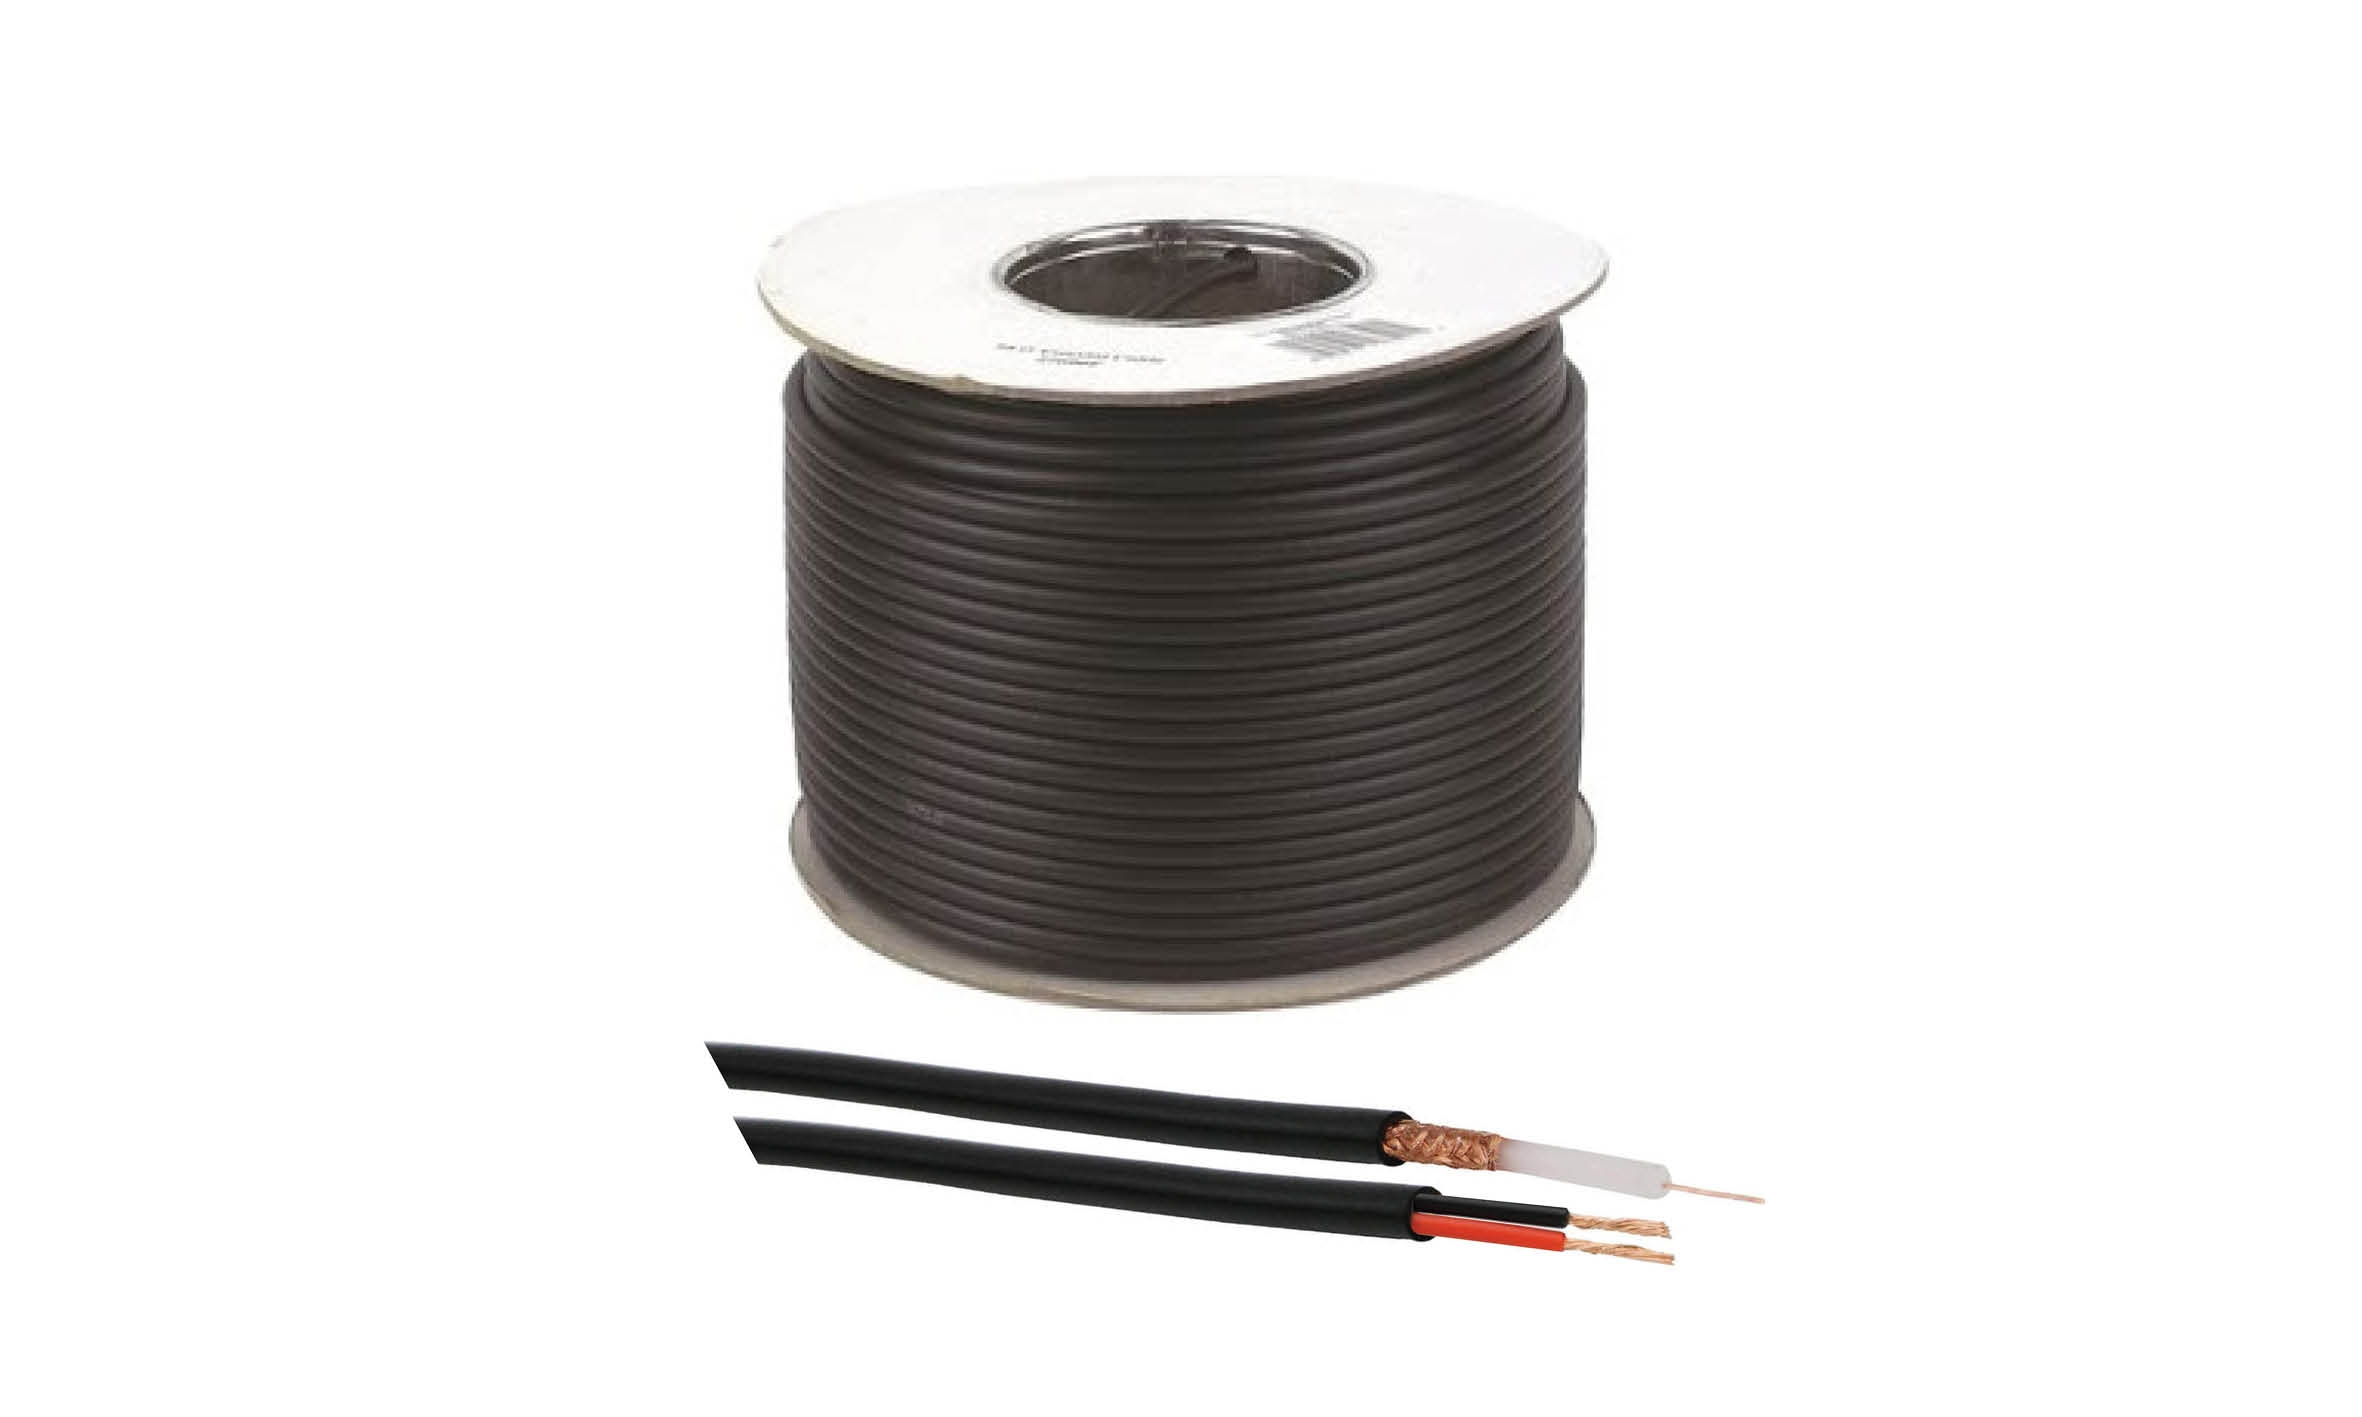 RG59 Cables